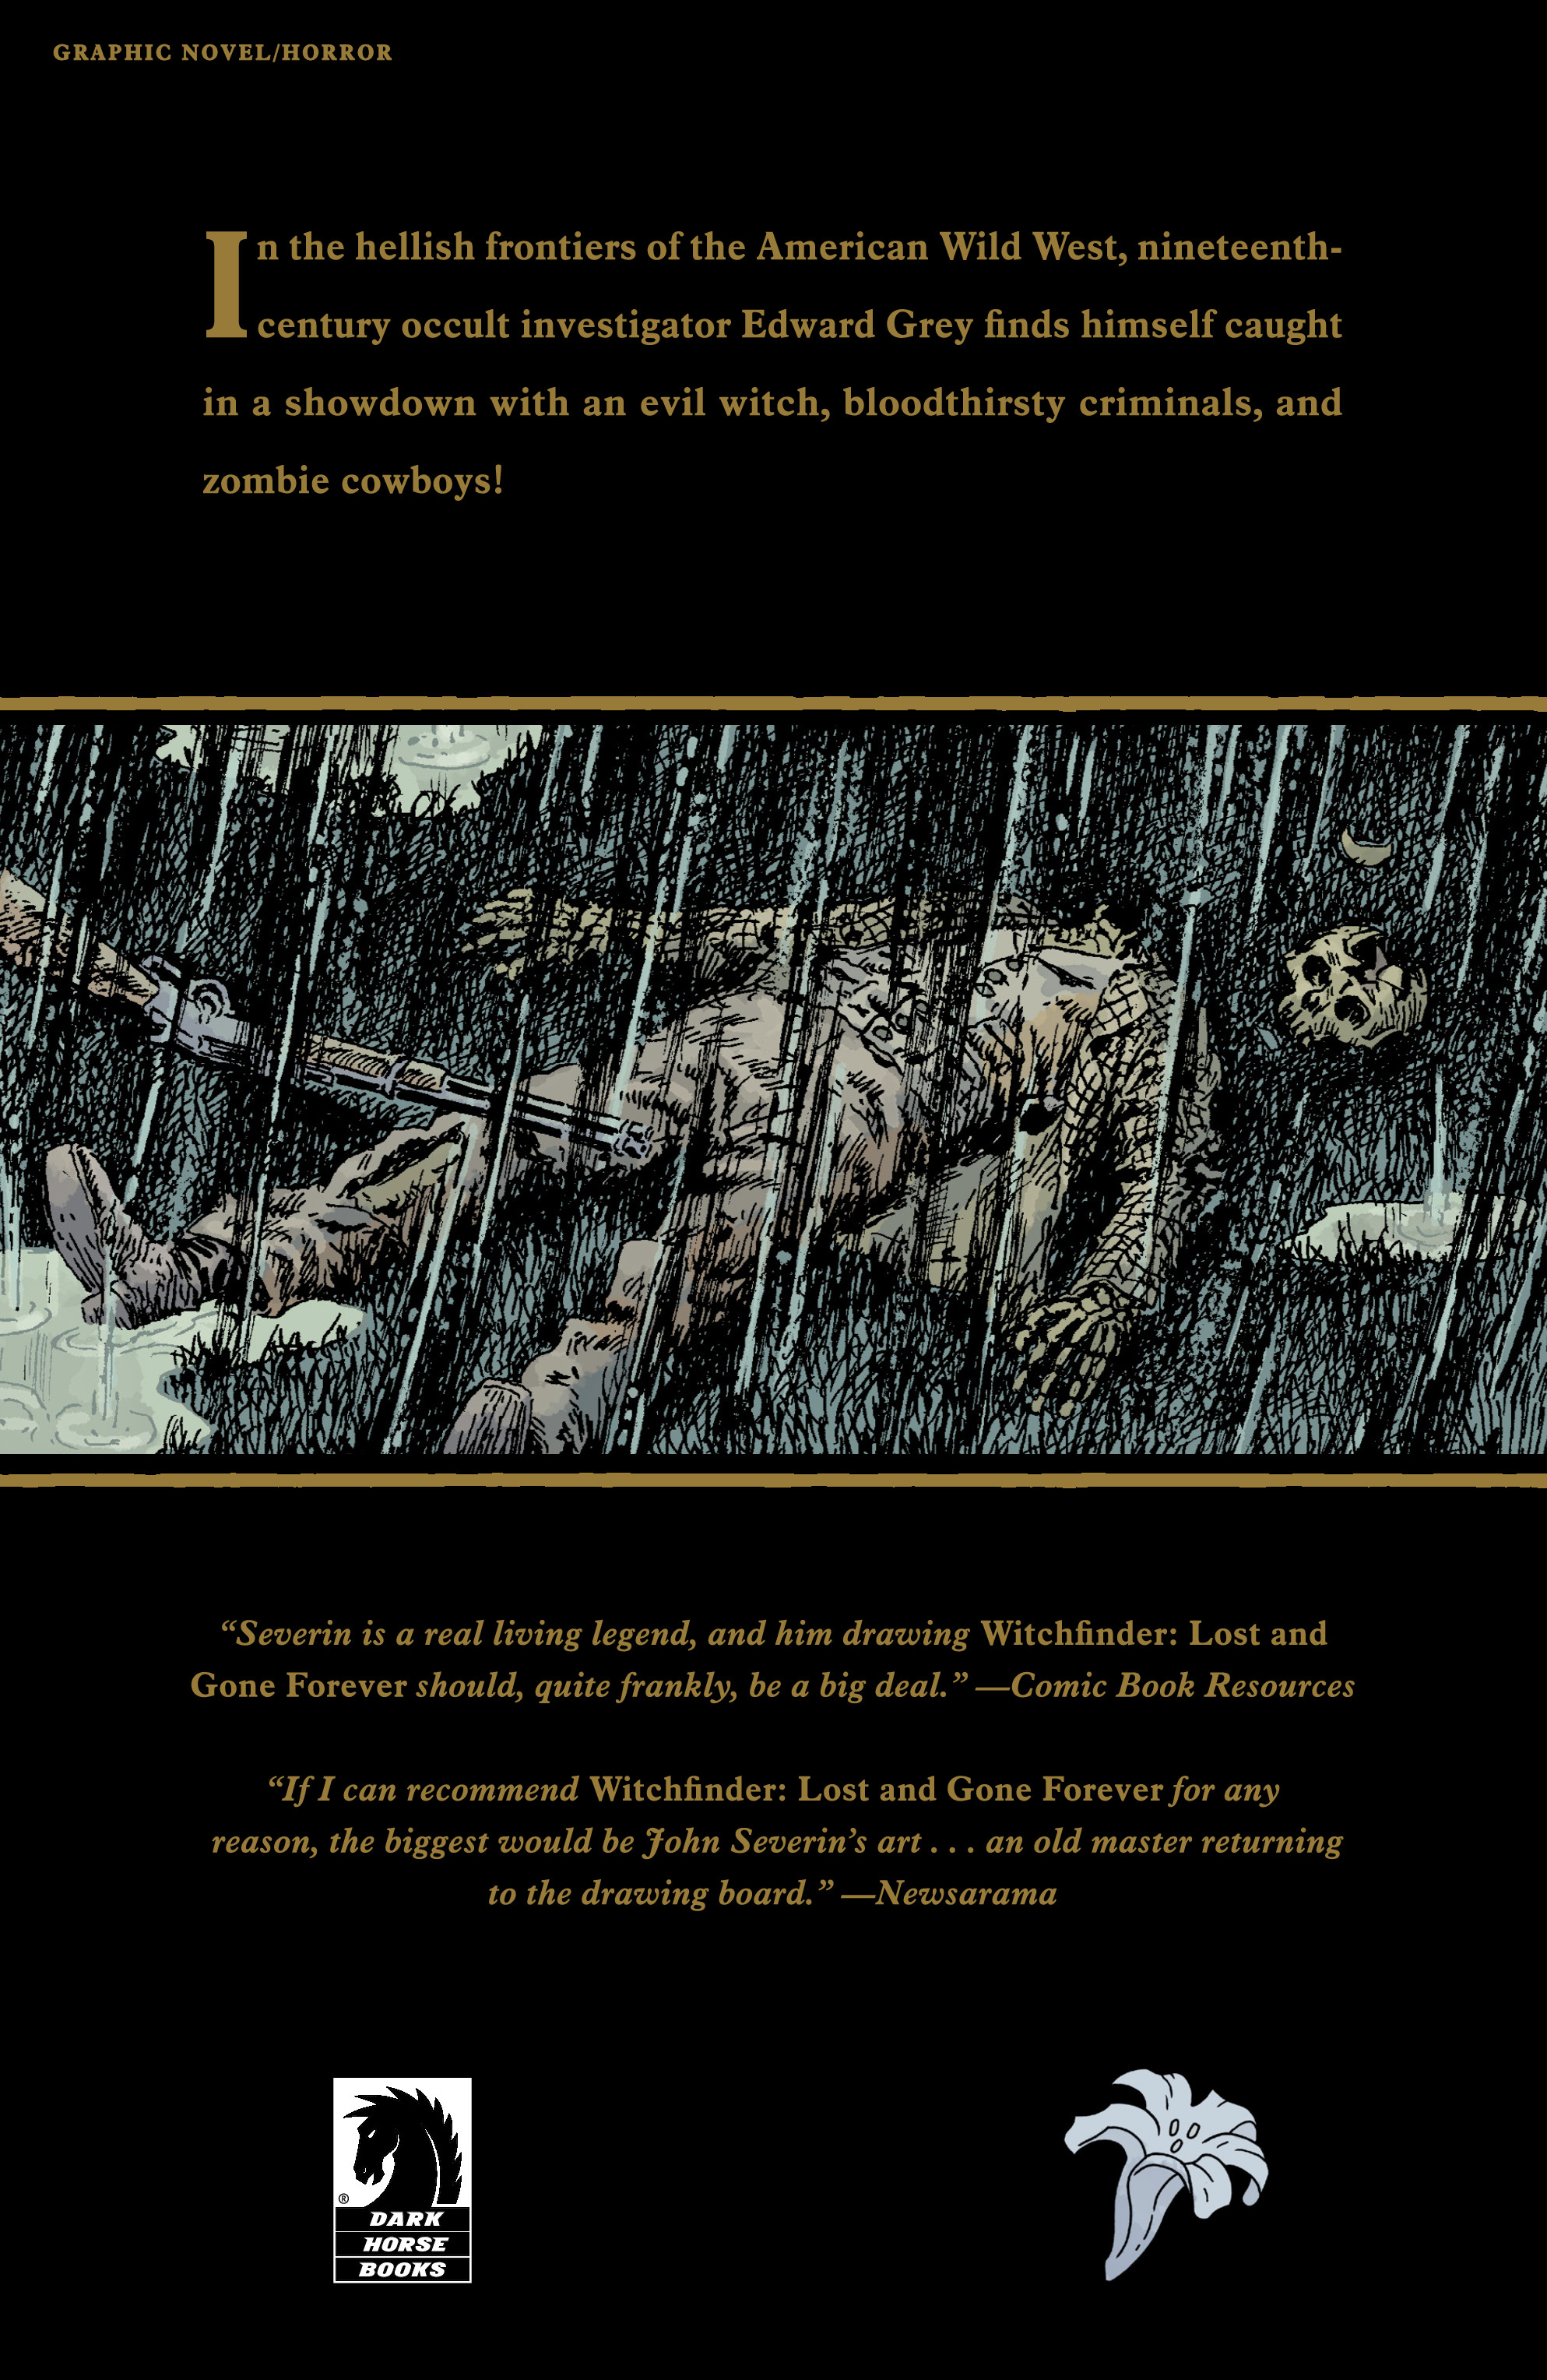 Read online Sir Edward Grey, Witchfinder: Lost and Gone Forever comic -  Issue # TPB - 133